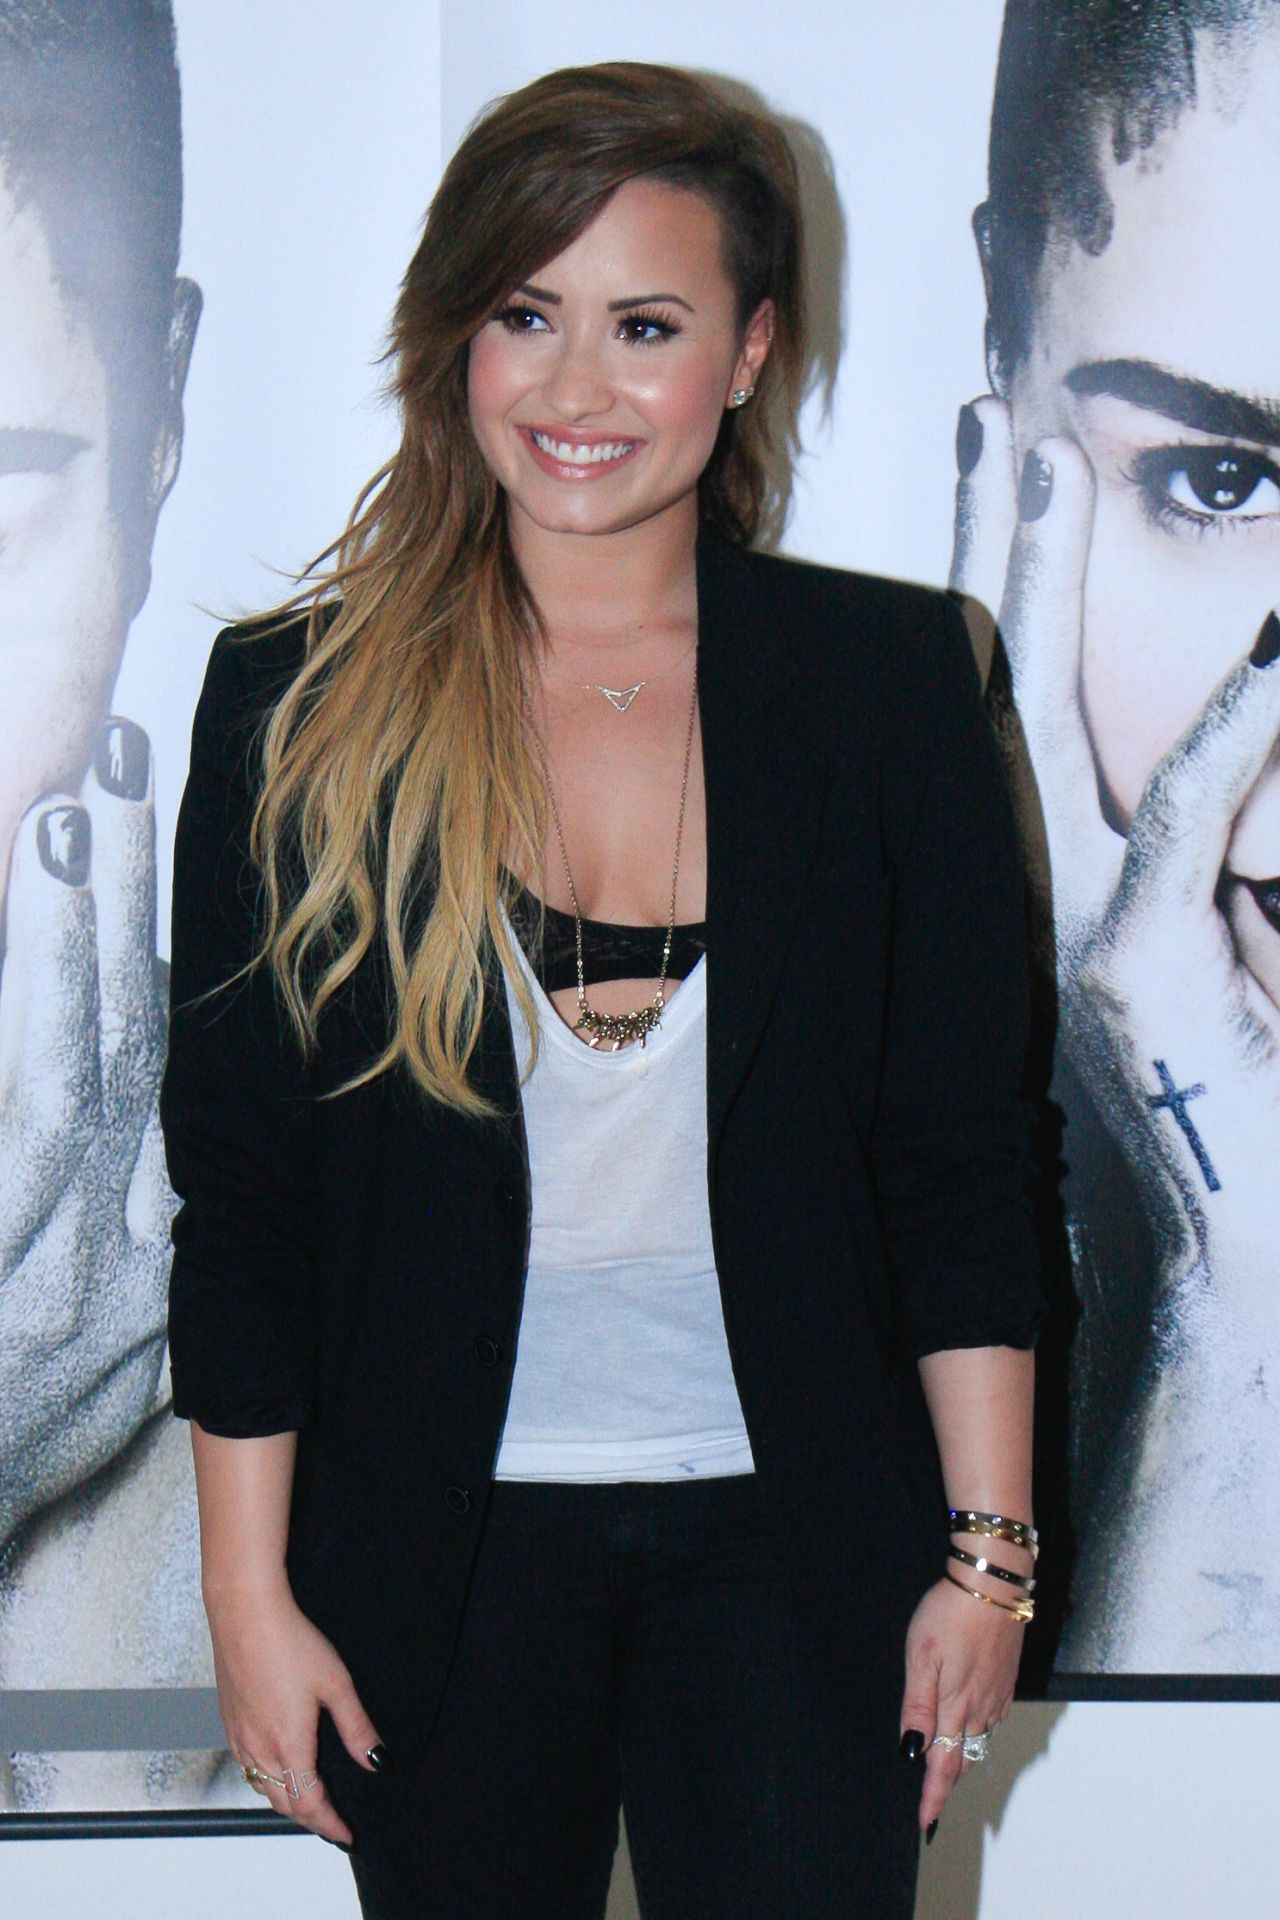 Demi Lovato Promoting Her CD In Brazil April 2014